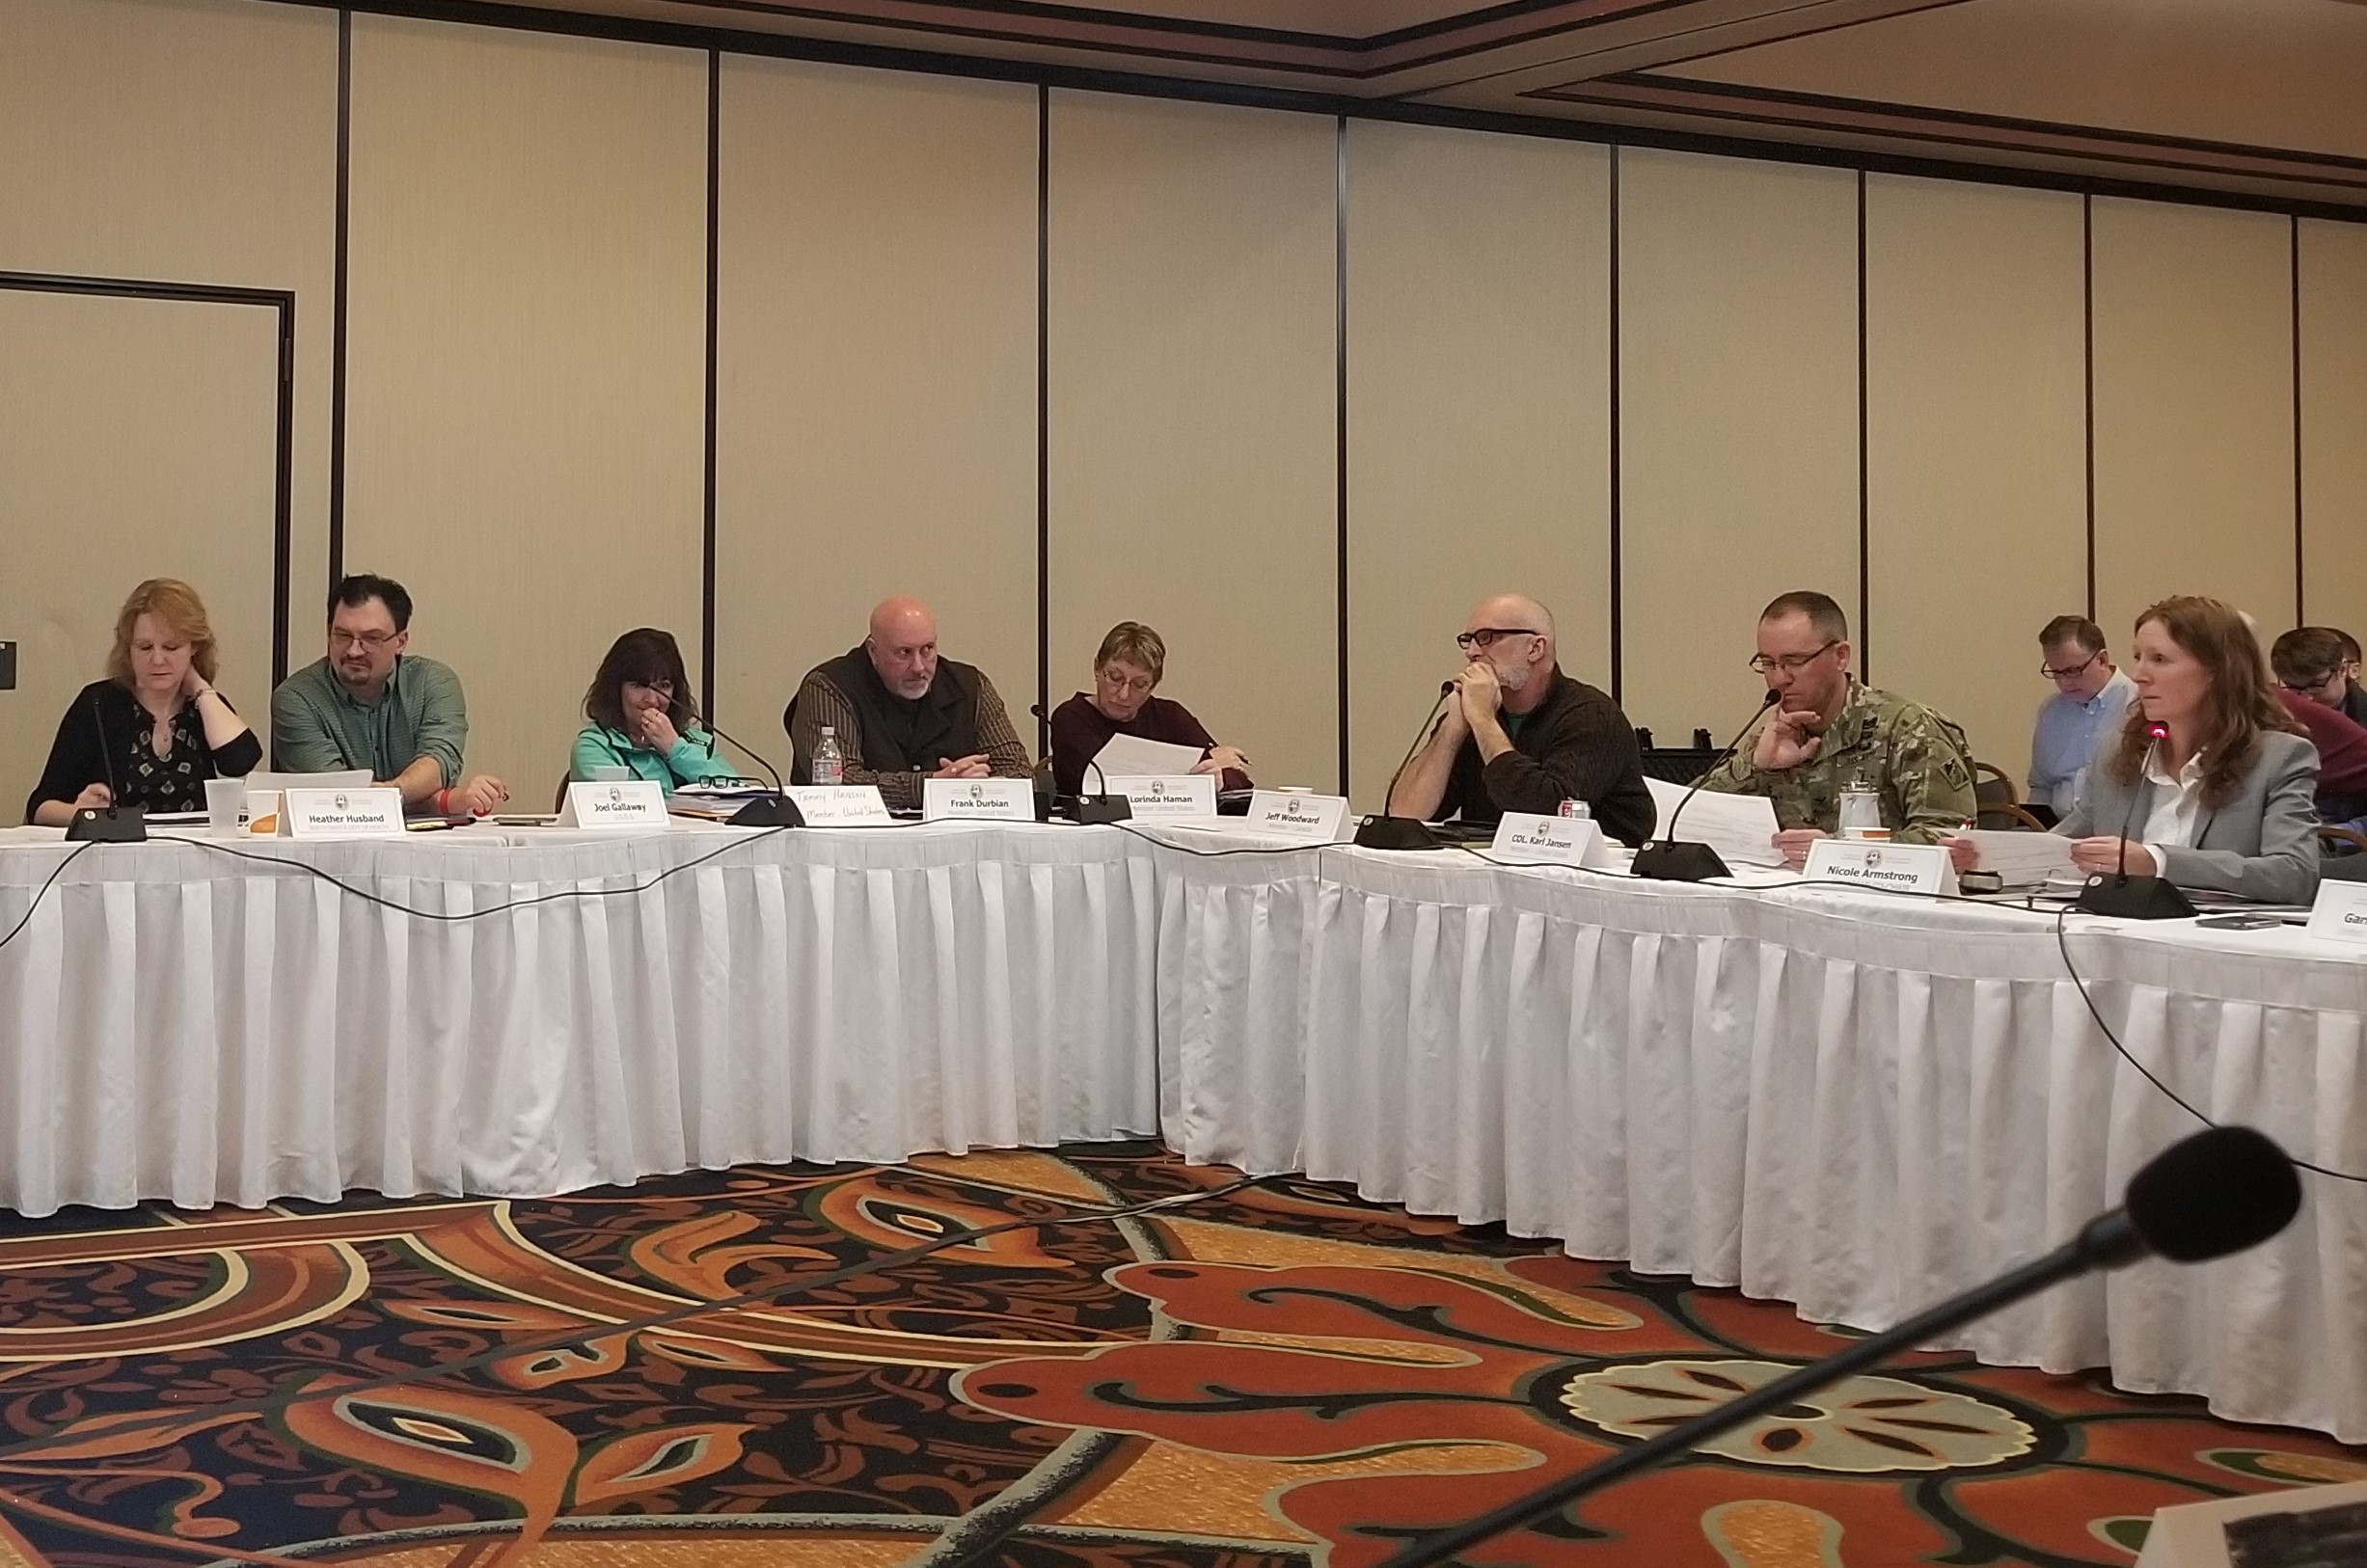 ISRB Meeting February 20, 2020 at the Clarion Hotel in Minot, ND